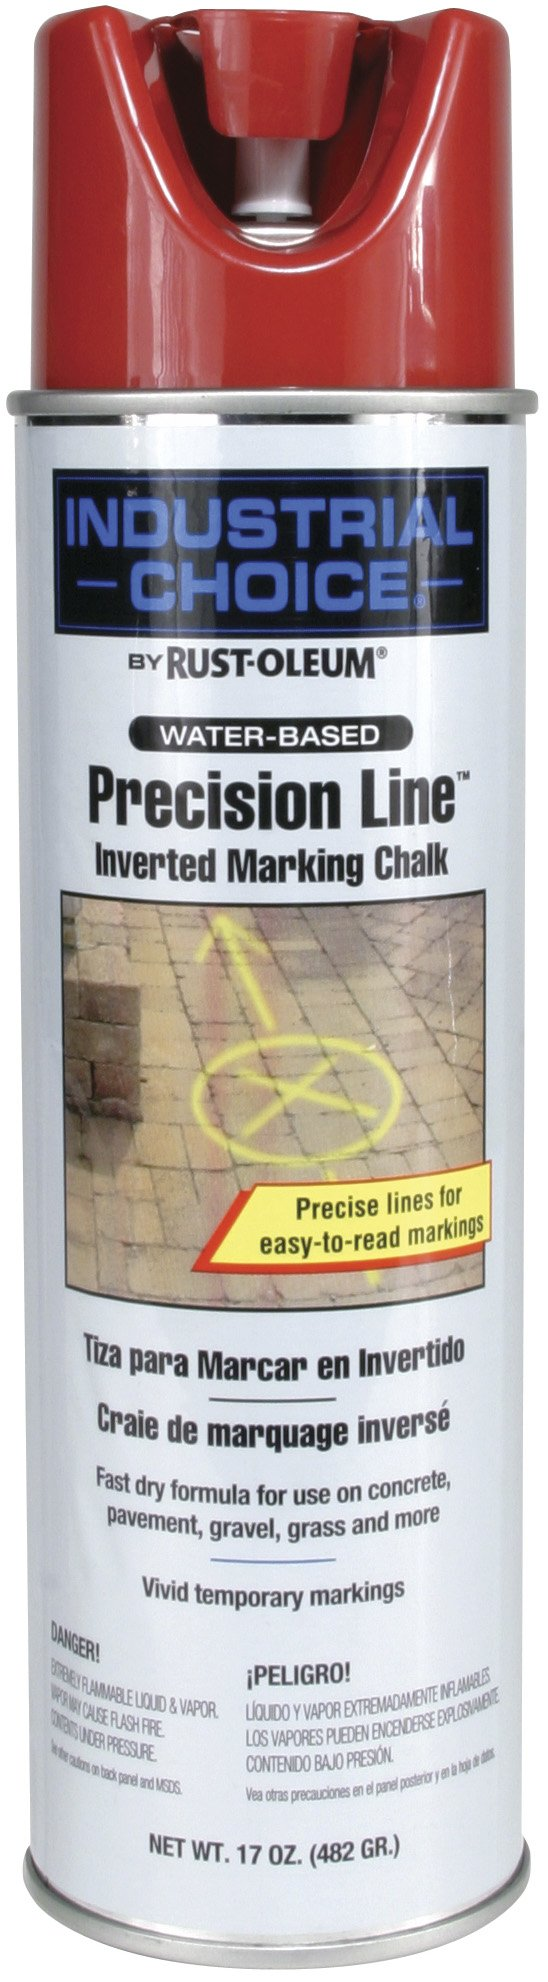 Rust-Oleum 205235 MC1800 System Precision Line Inverted Marking Chalk, 17-Ounce, Red